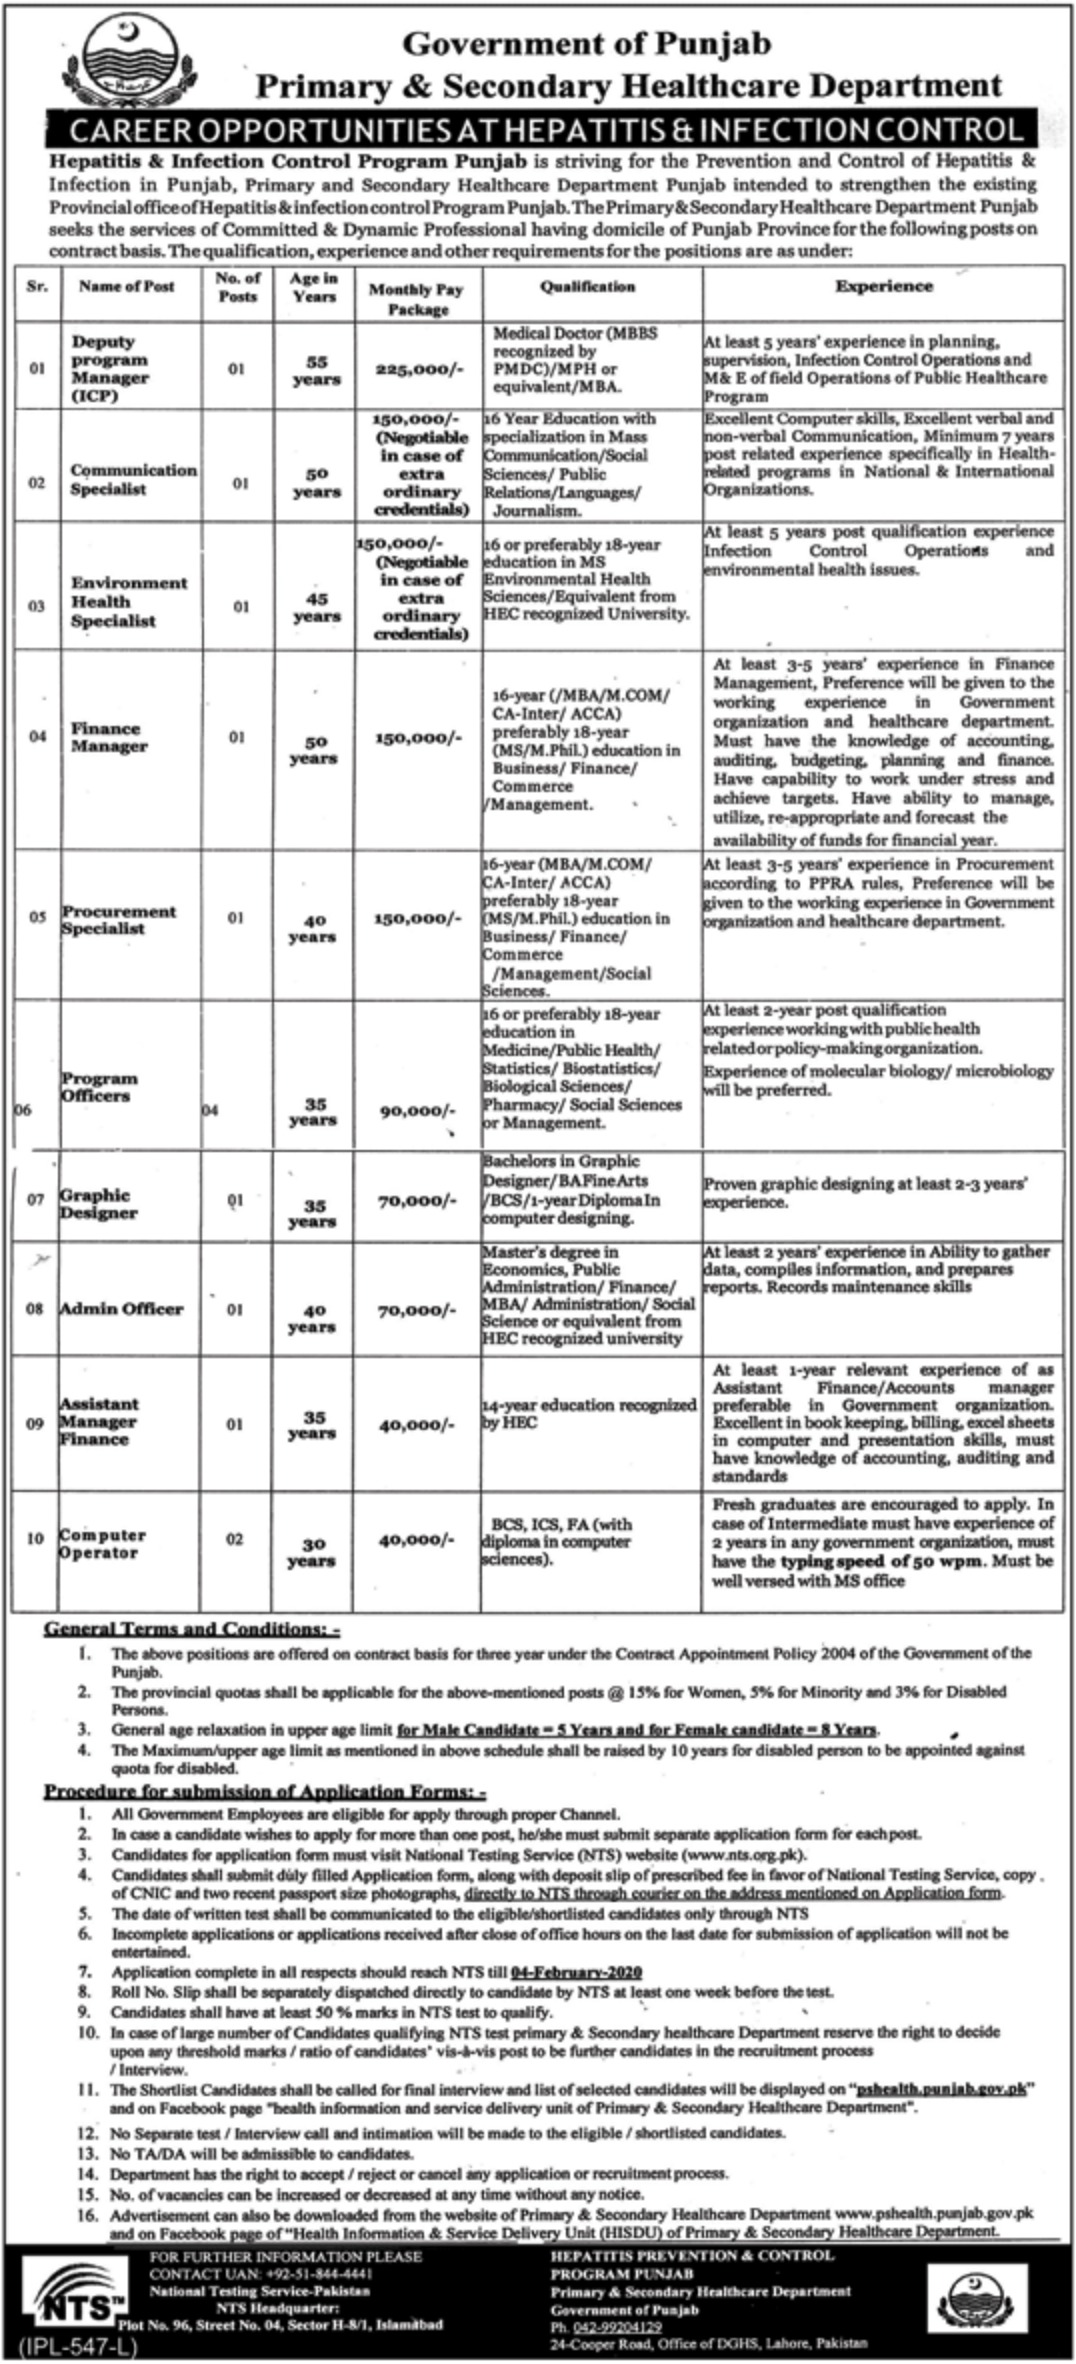 Primary & Secondary Healthcare Department Punjab Jobs 2020 via NTS